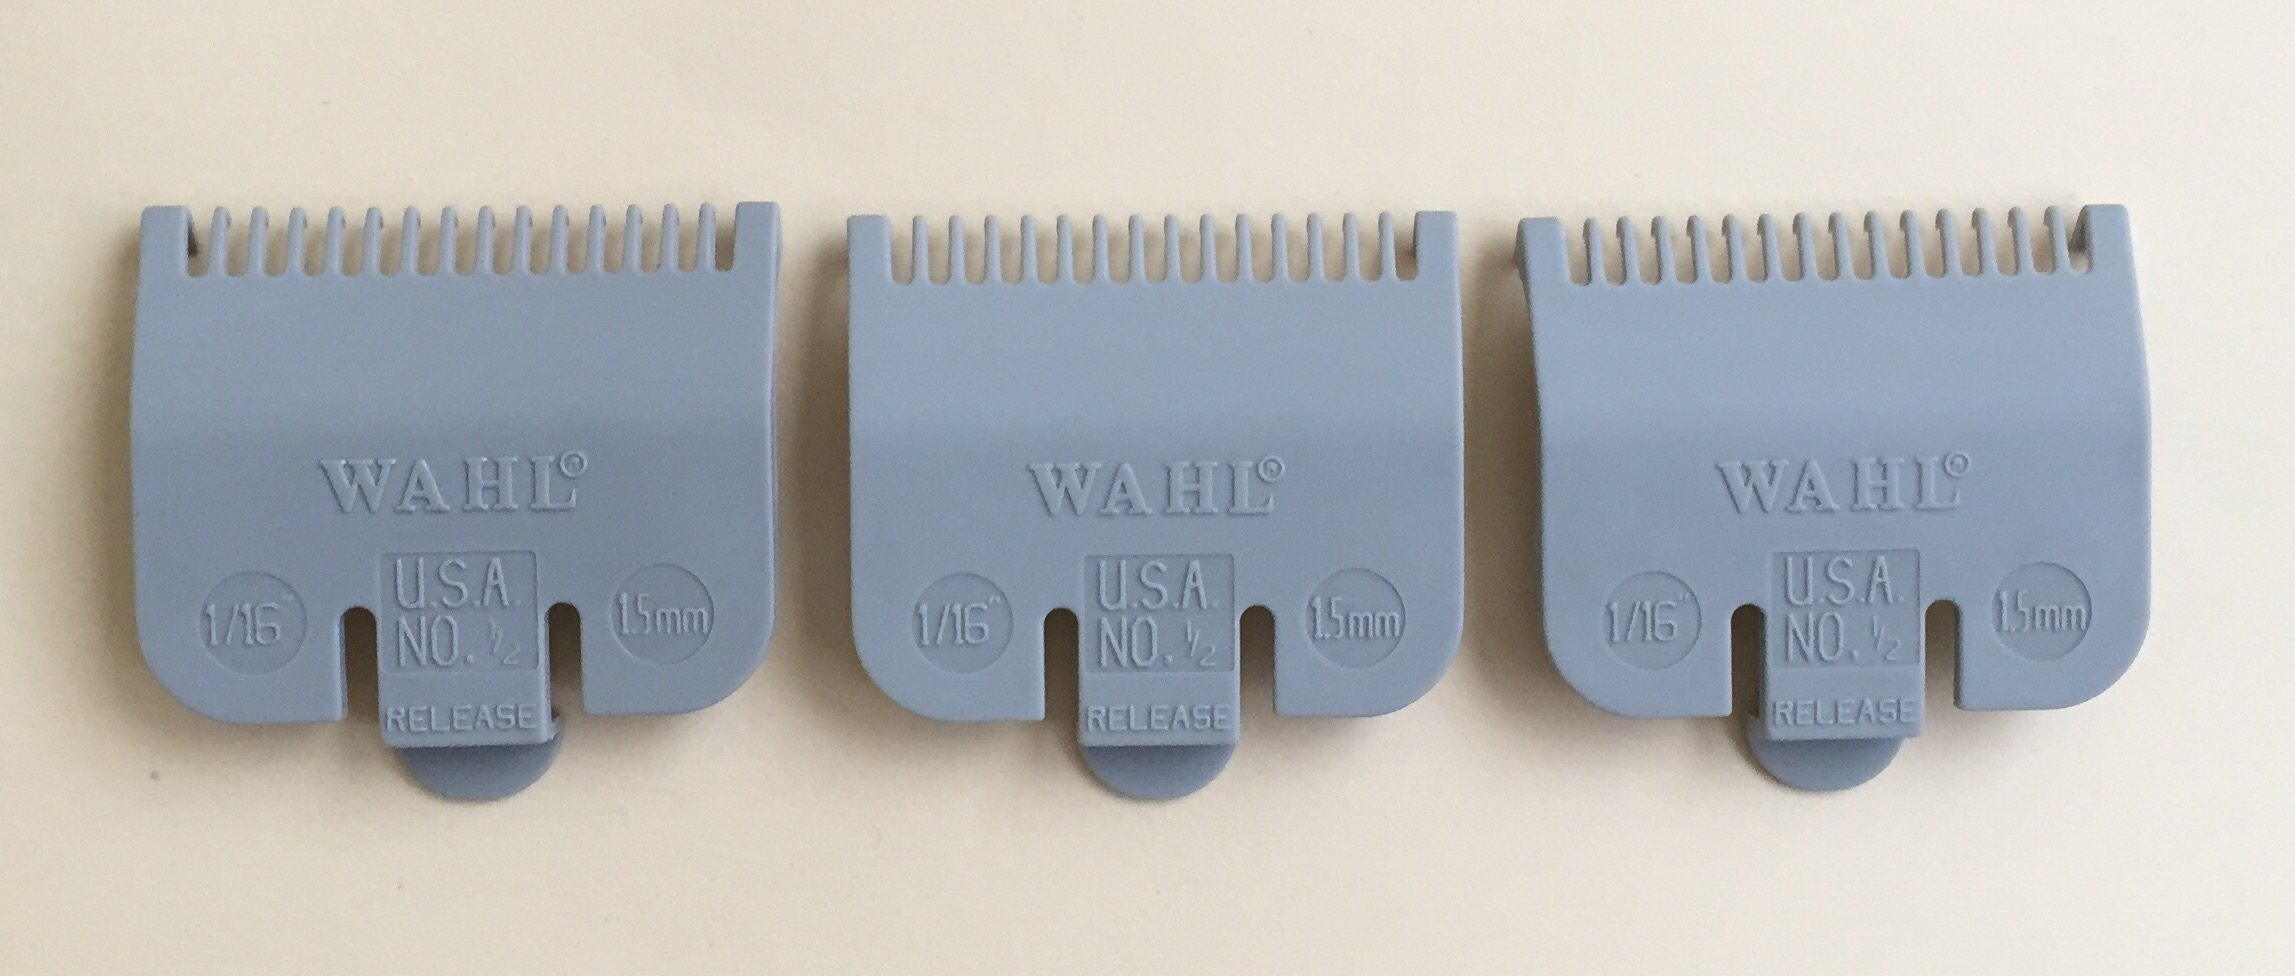 Wahl Three Pack 1/2 Attachment Cutting Guide by Wahl